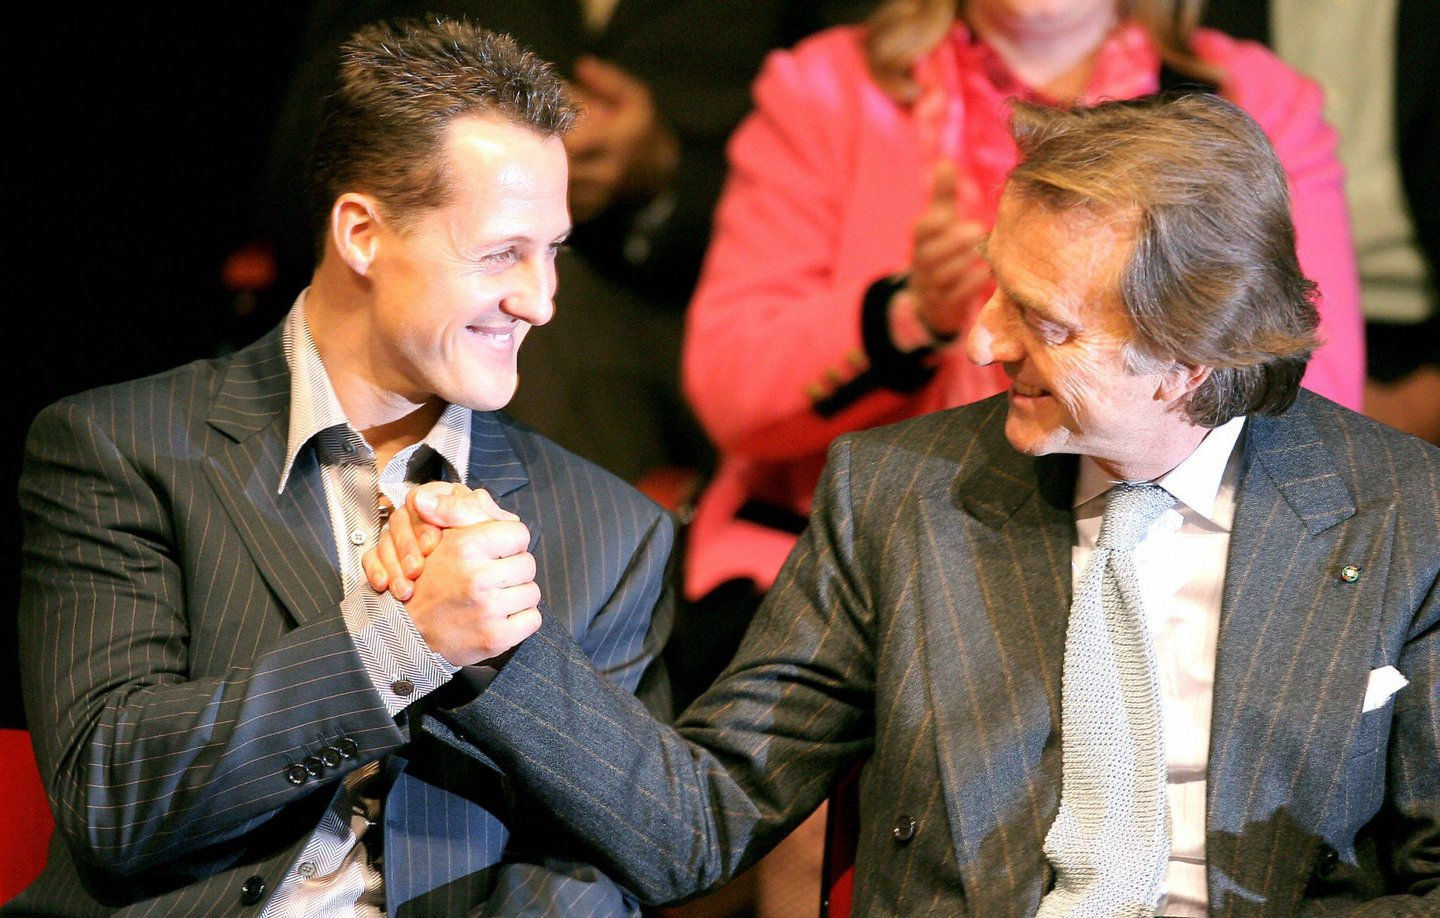 Maranello, ITALY: Retired Ferrari F1 driver Micheal Schumacher of Germany (L), is congratulated by Ferrari President Luca Cordero di Montezemolo after he collected the town of Maranello's Honorary Citizenship, 05 December 2006 during a ceremony at the Enzo Ferrari Auditorium in Maranello. The town's governing council unanimously voted last week to bestow the honor on the German driver above all for winning five titles with Ferrari and helping it clinch six consecutive constructors' championships. AFP PHOTO / FILIPPO MONTEFORTE (Photo credit should read FILIPPO MONTEFORTE/AFP/Getty Images)